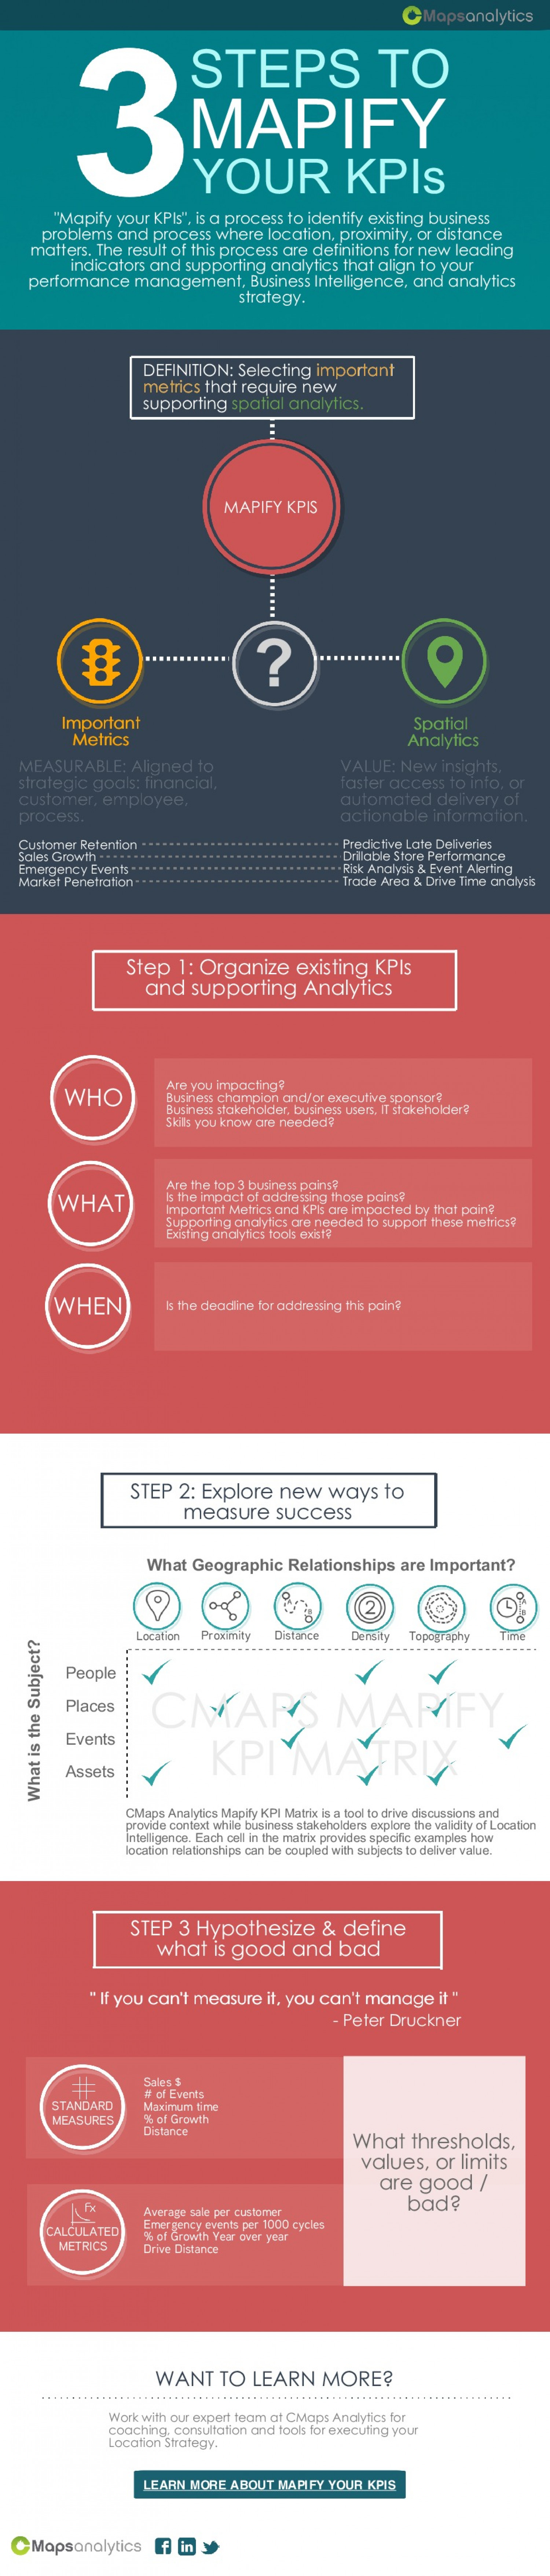 Three Steps to Mapify your KPIs | Make them More Intelligent Infographic